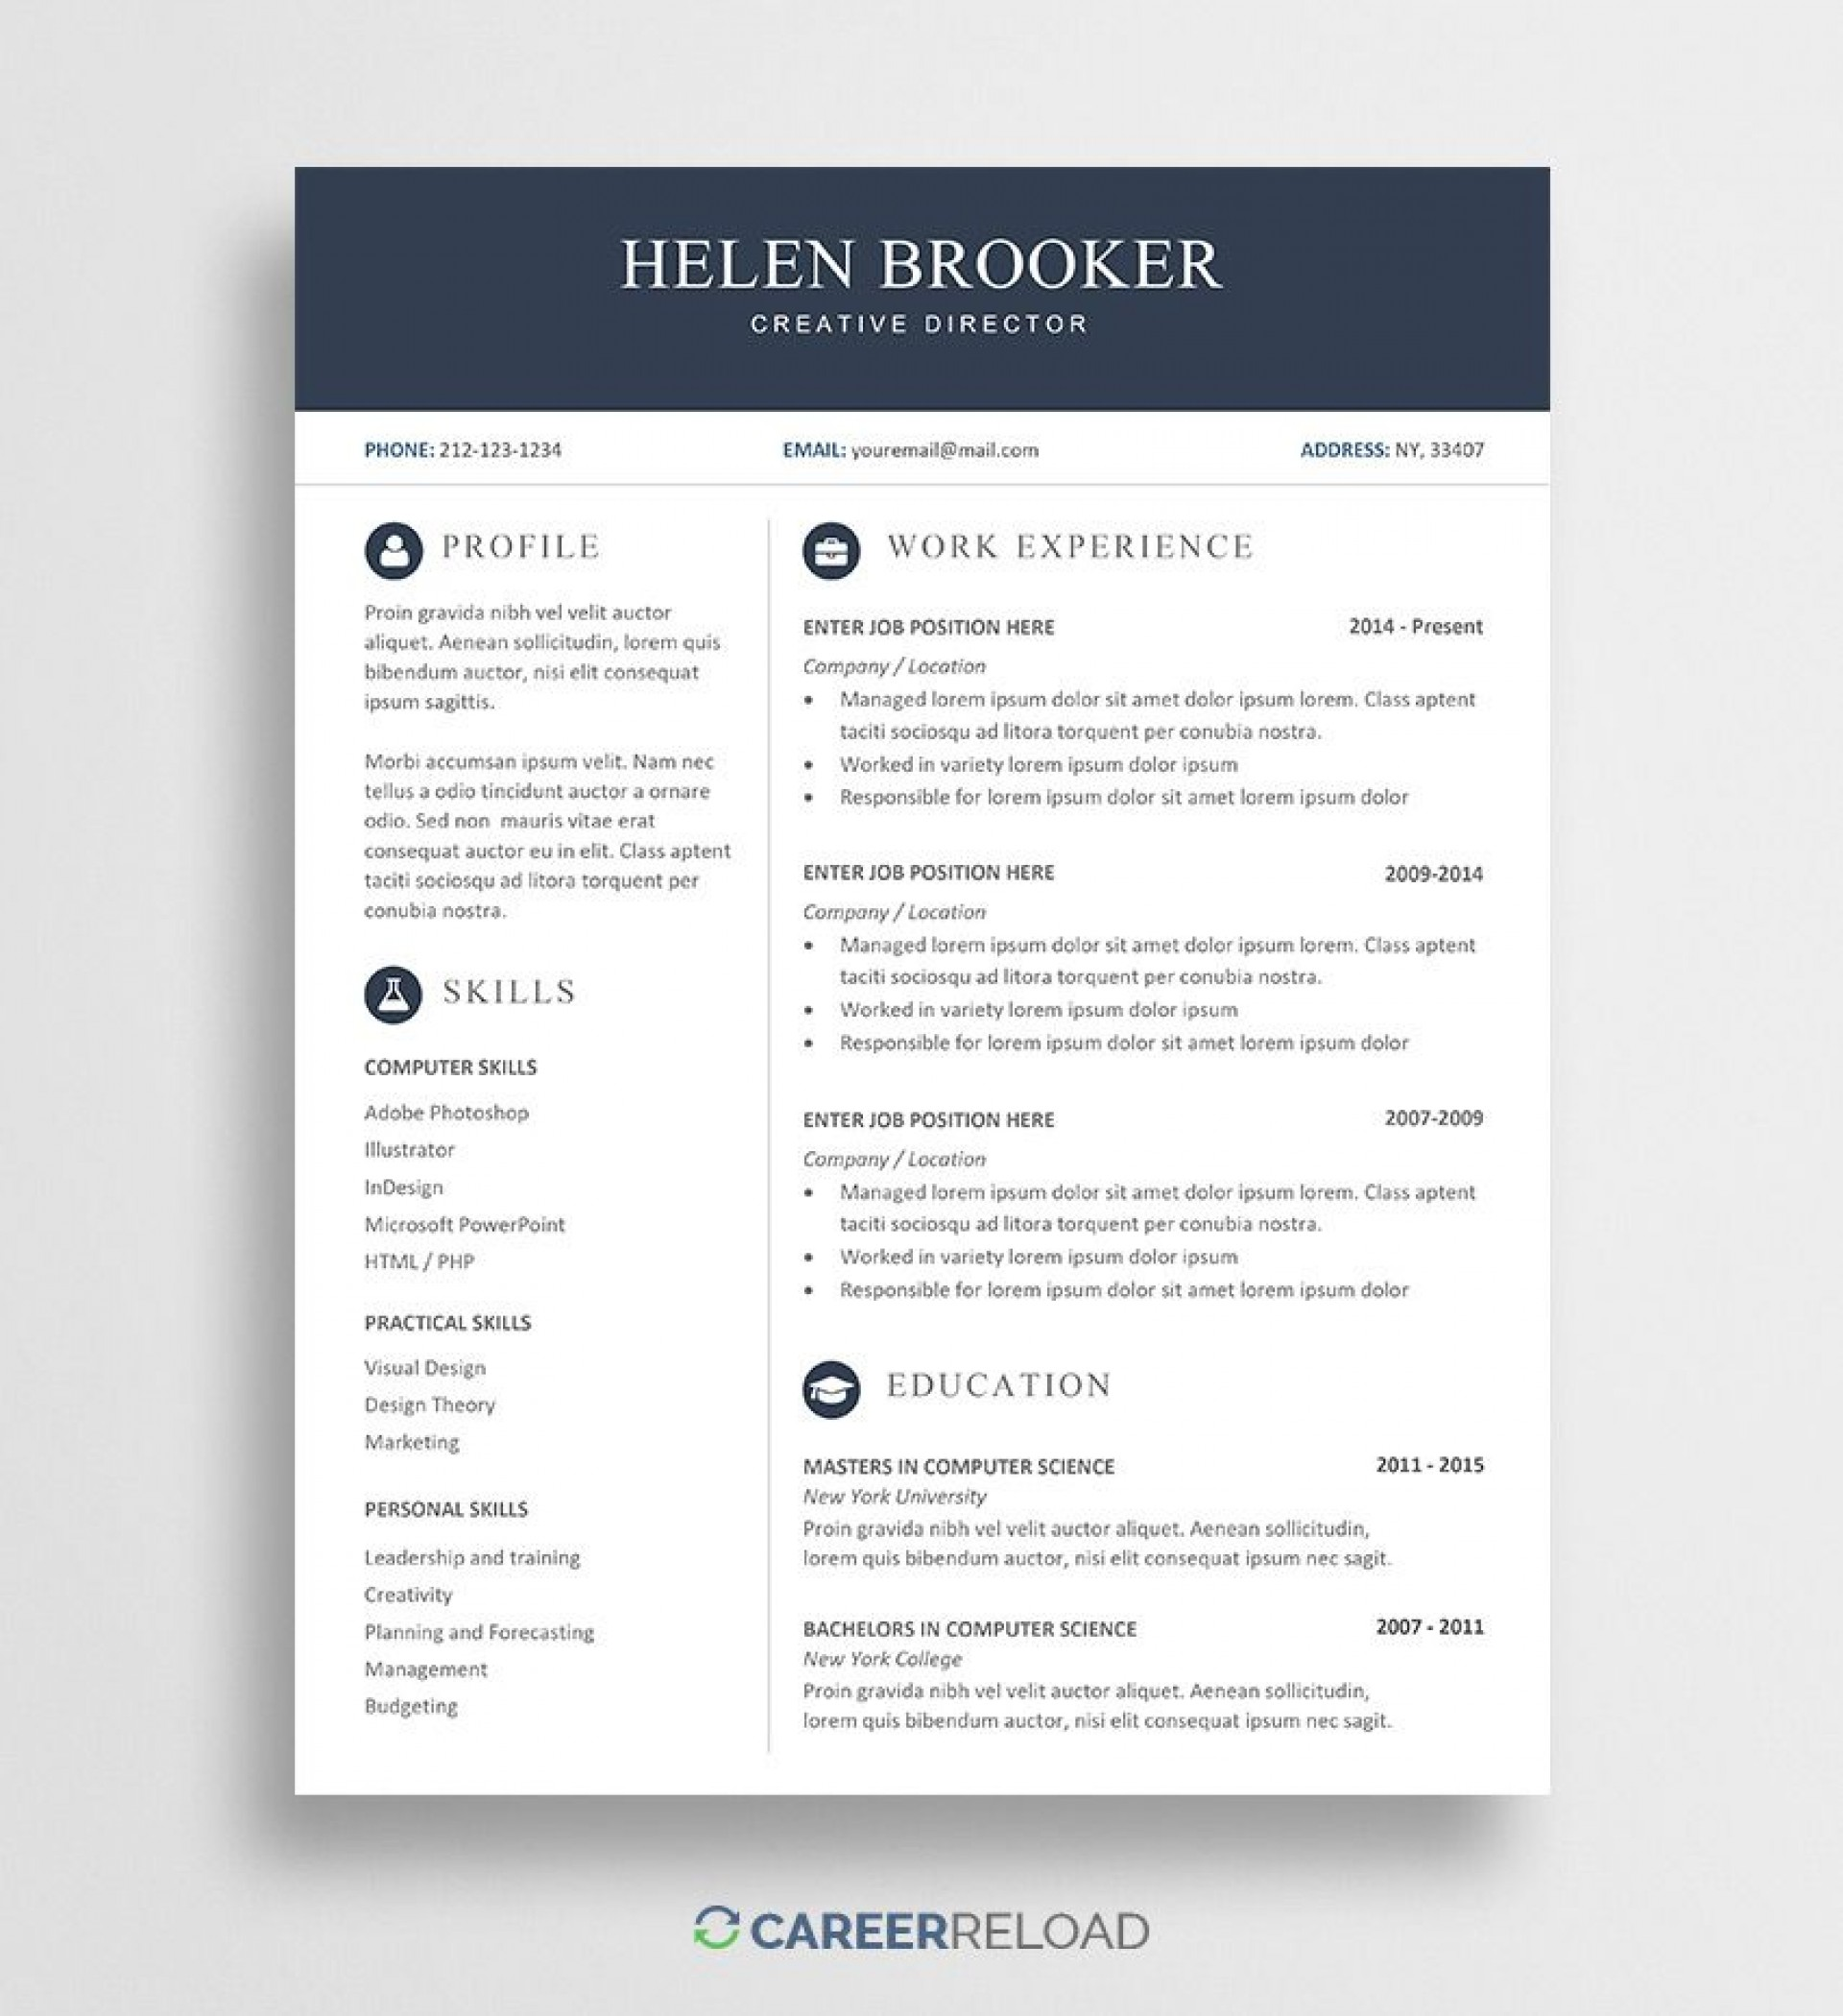 002 Magnificent Downloadable Resume Template Word Picture  Free Download Philippine 20181920